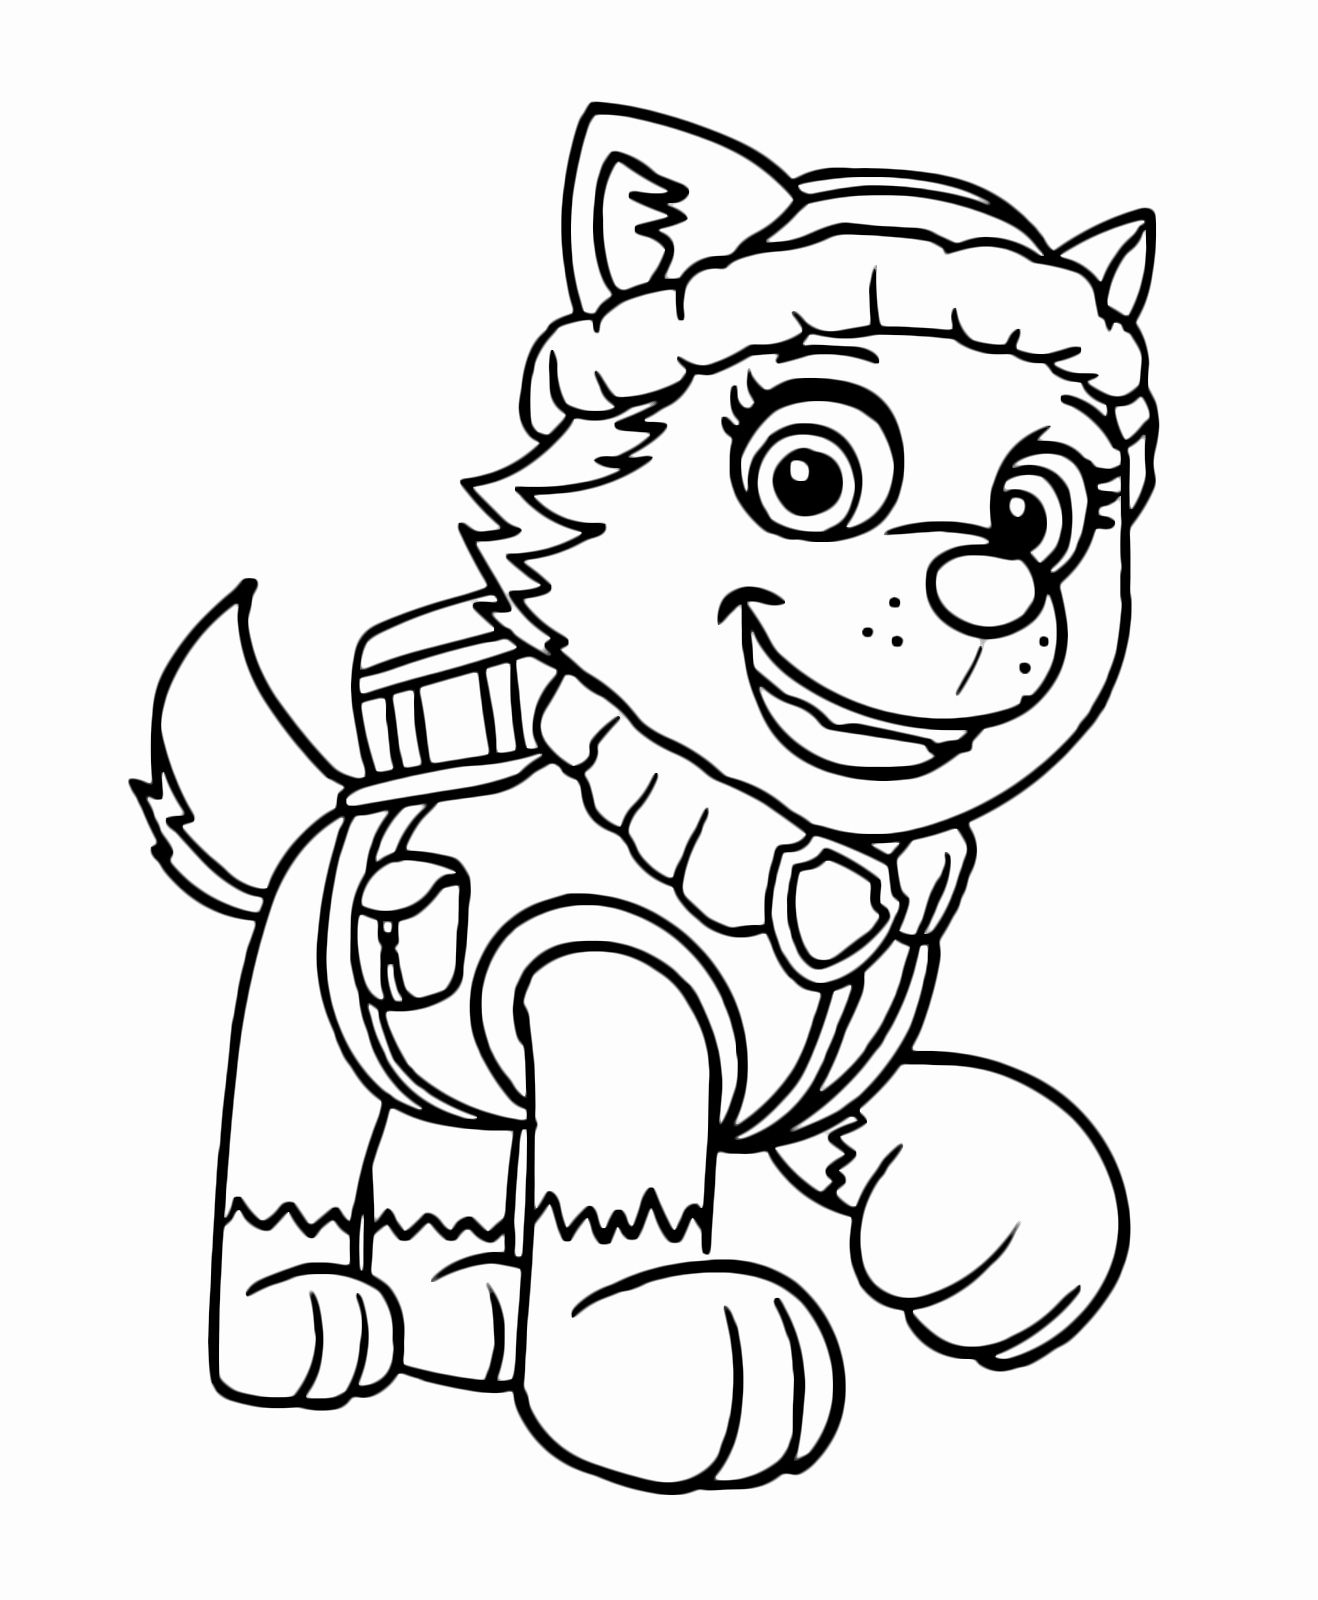 28 Everest Paw Patrol Coloring Page In 2020 Paw Patrol Coloring